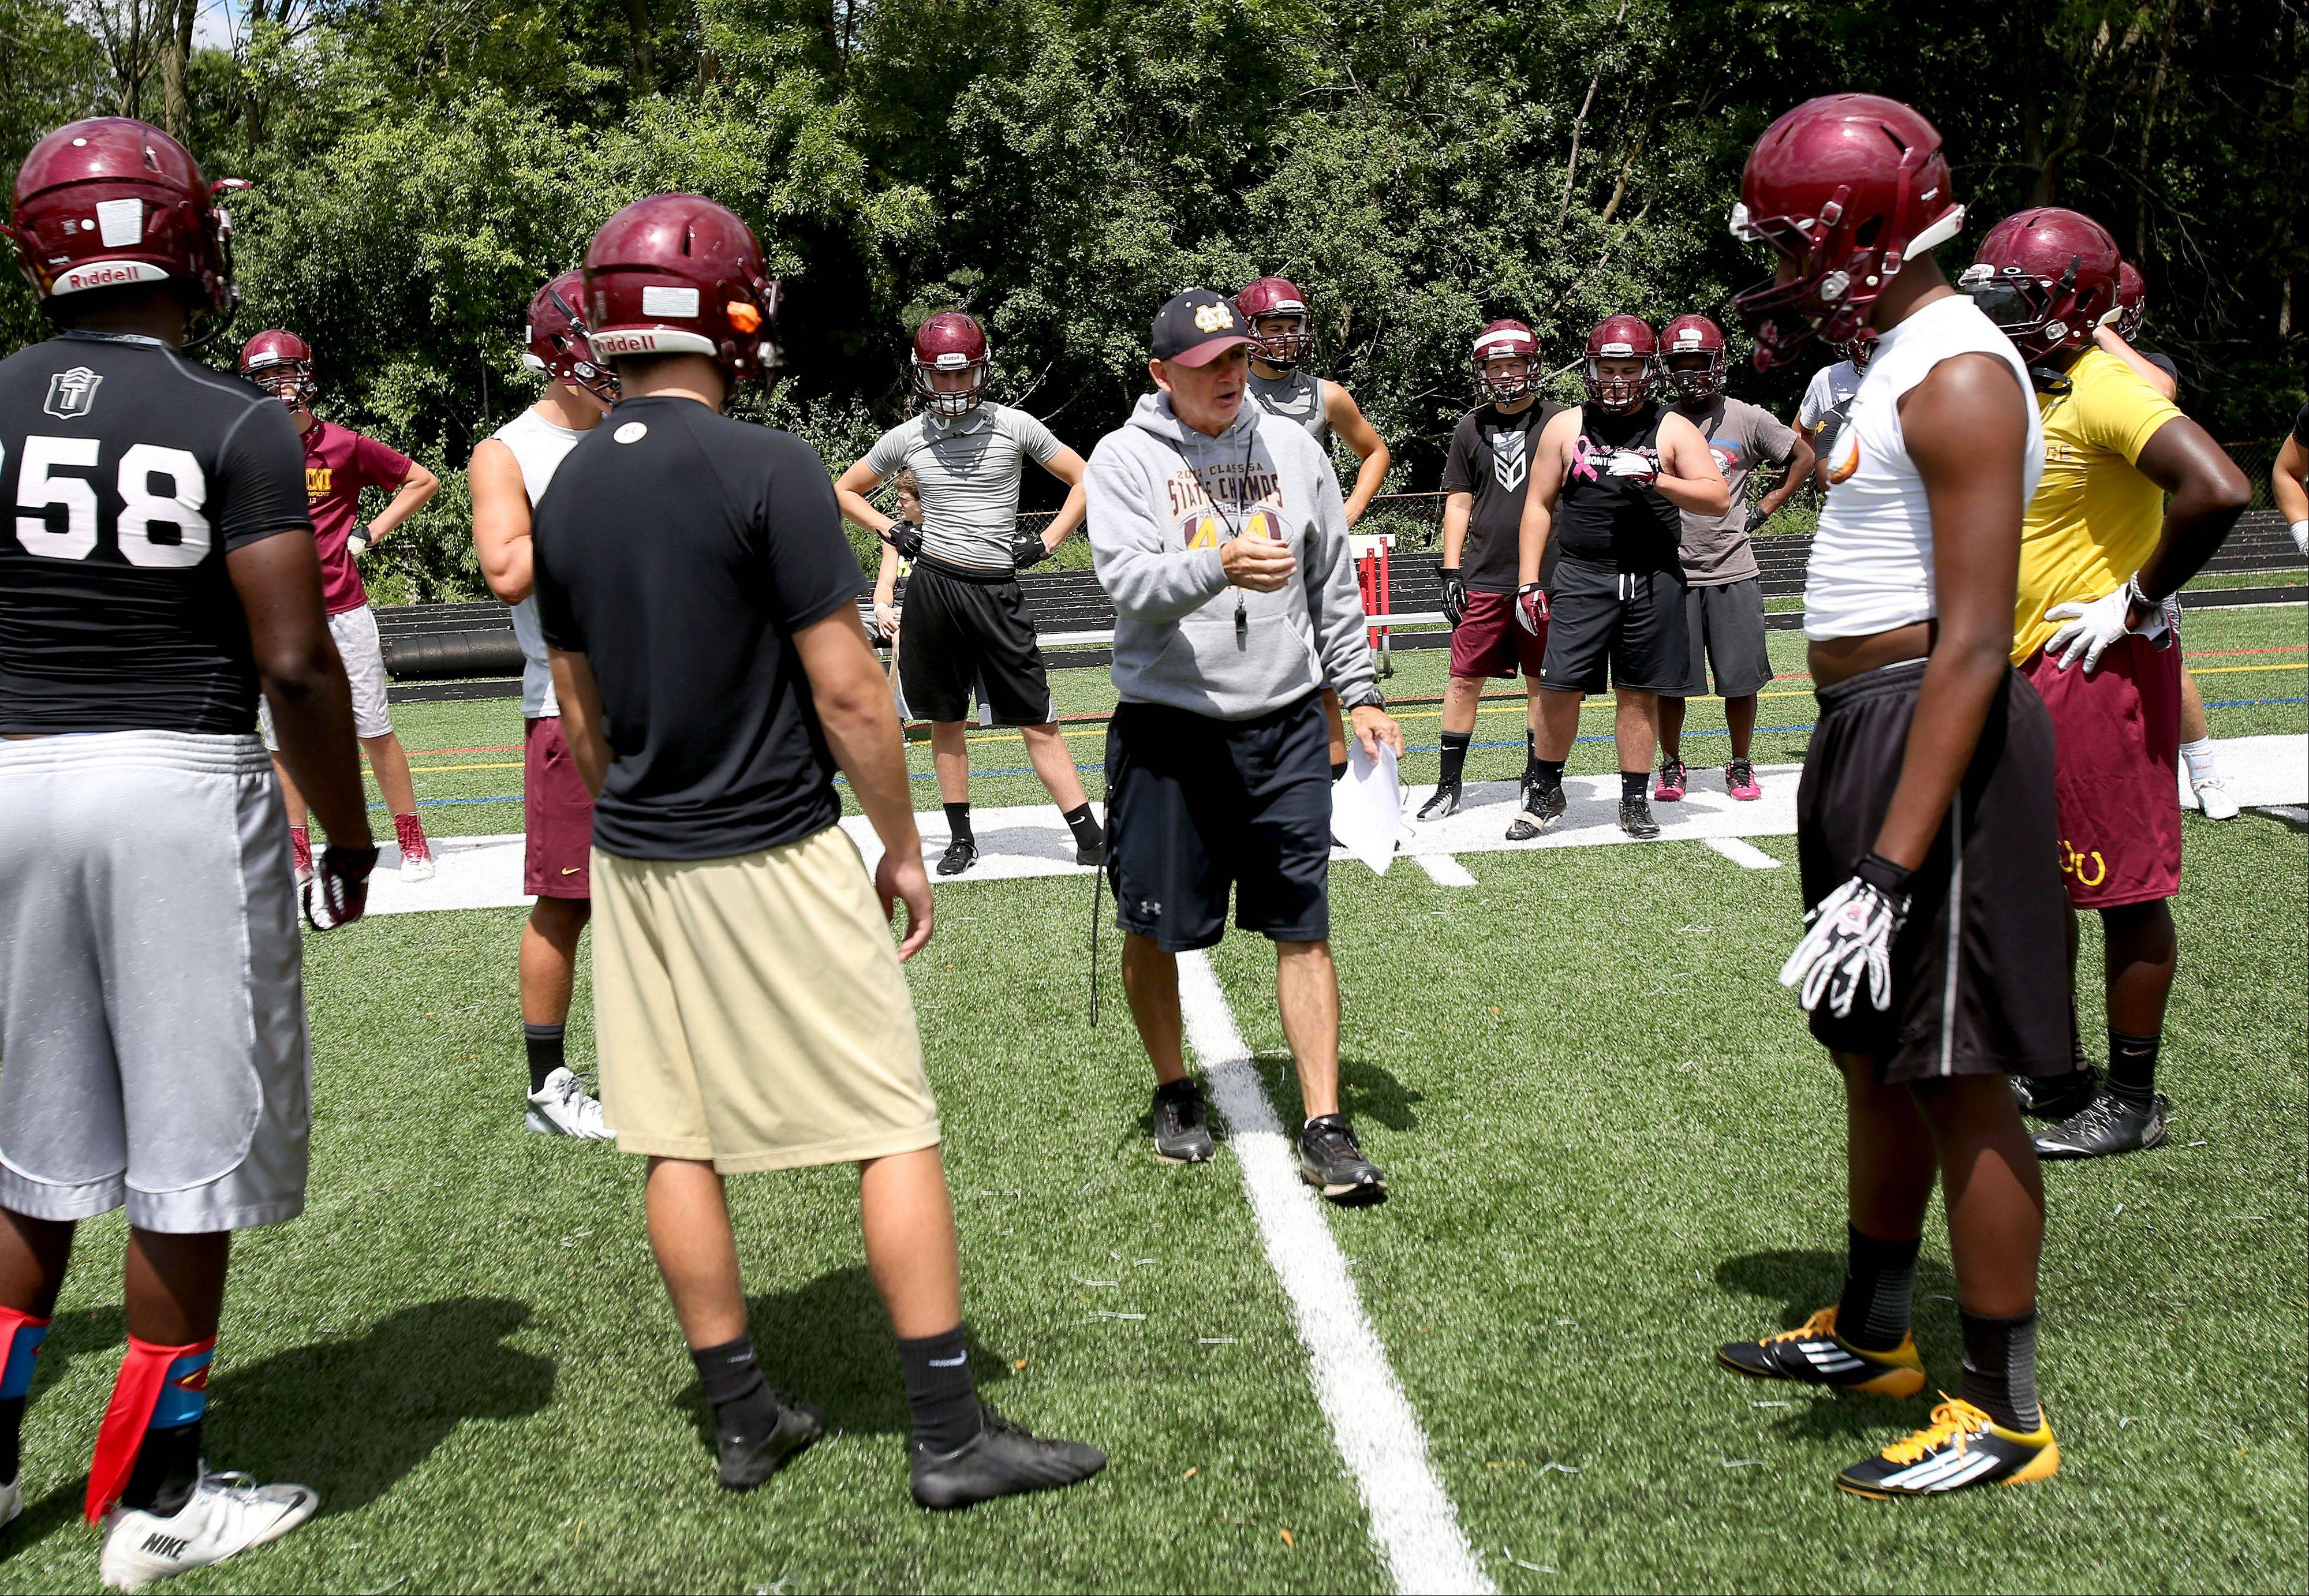 Coach Chris Andriano gets the team started at the first Montini football practice of the season.